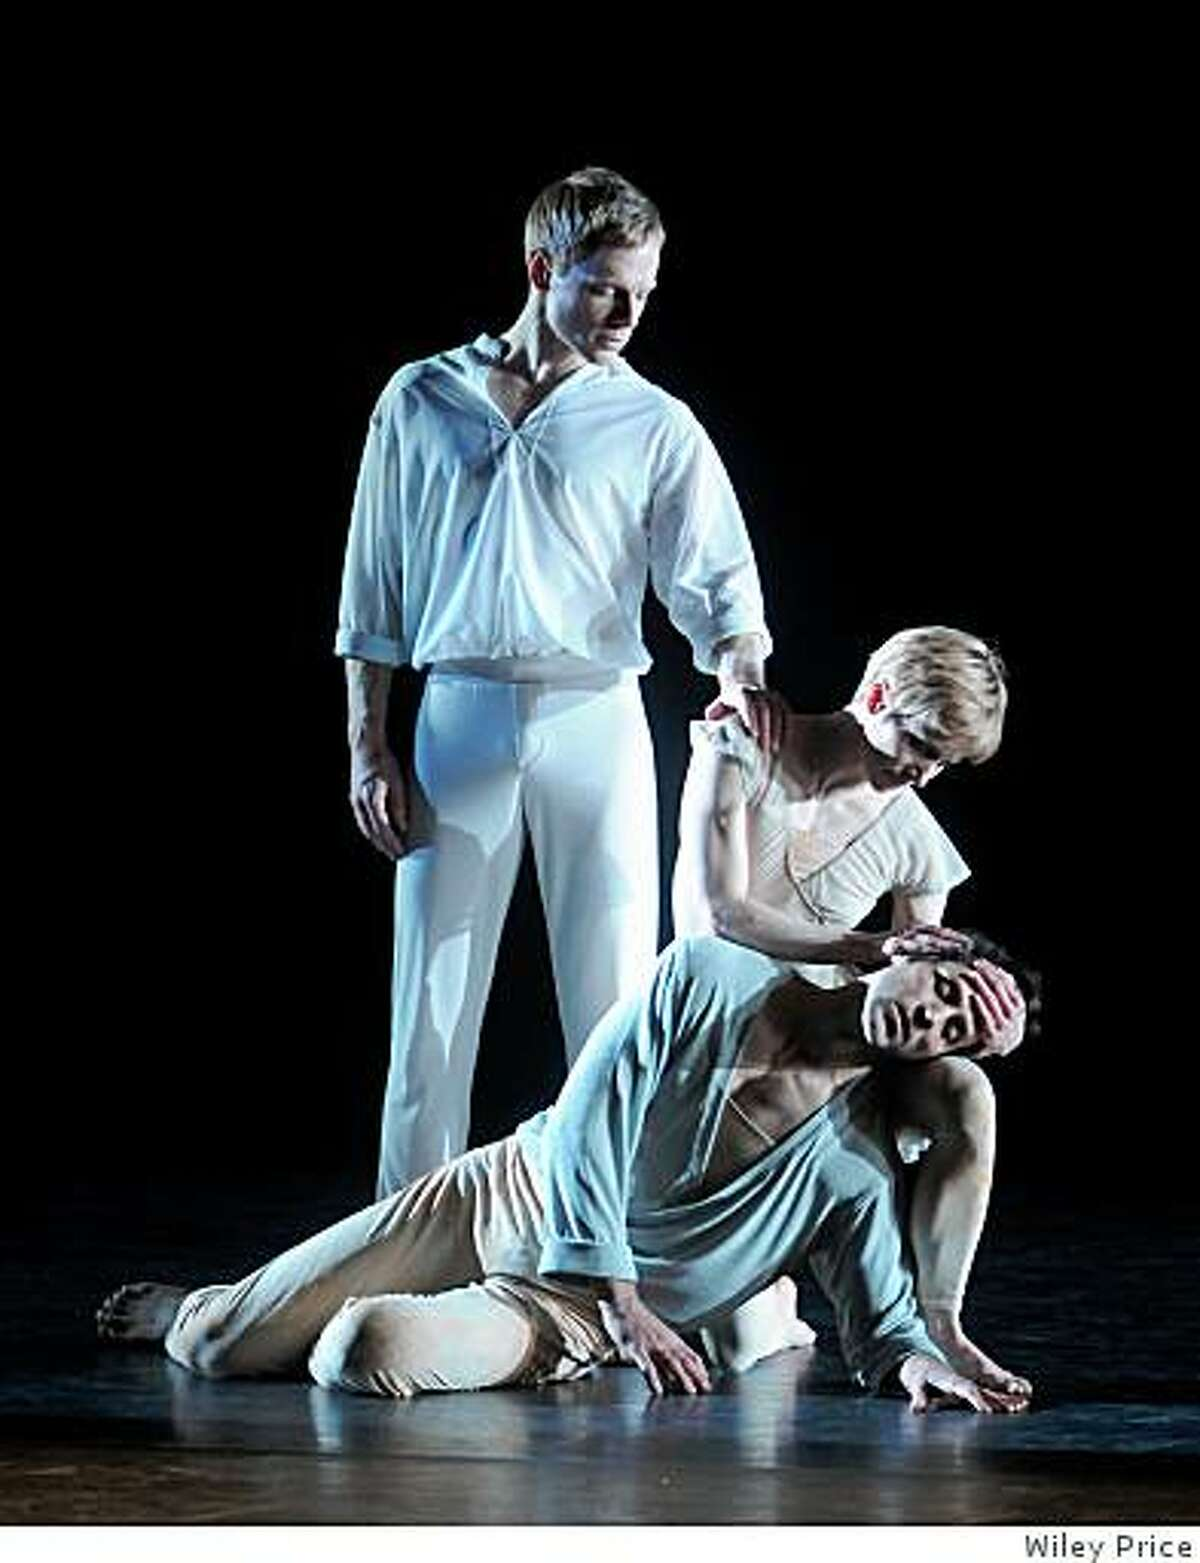 Michael Trusnovec, Julie Tice and Orion Duckstein dance in Beloved Renegade in Program B of Paul Taylor Dance